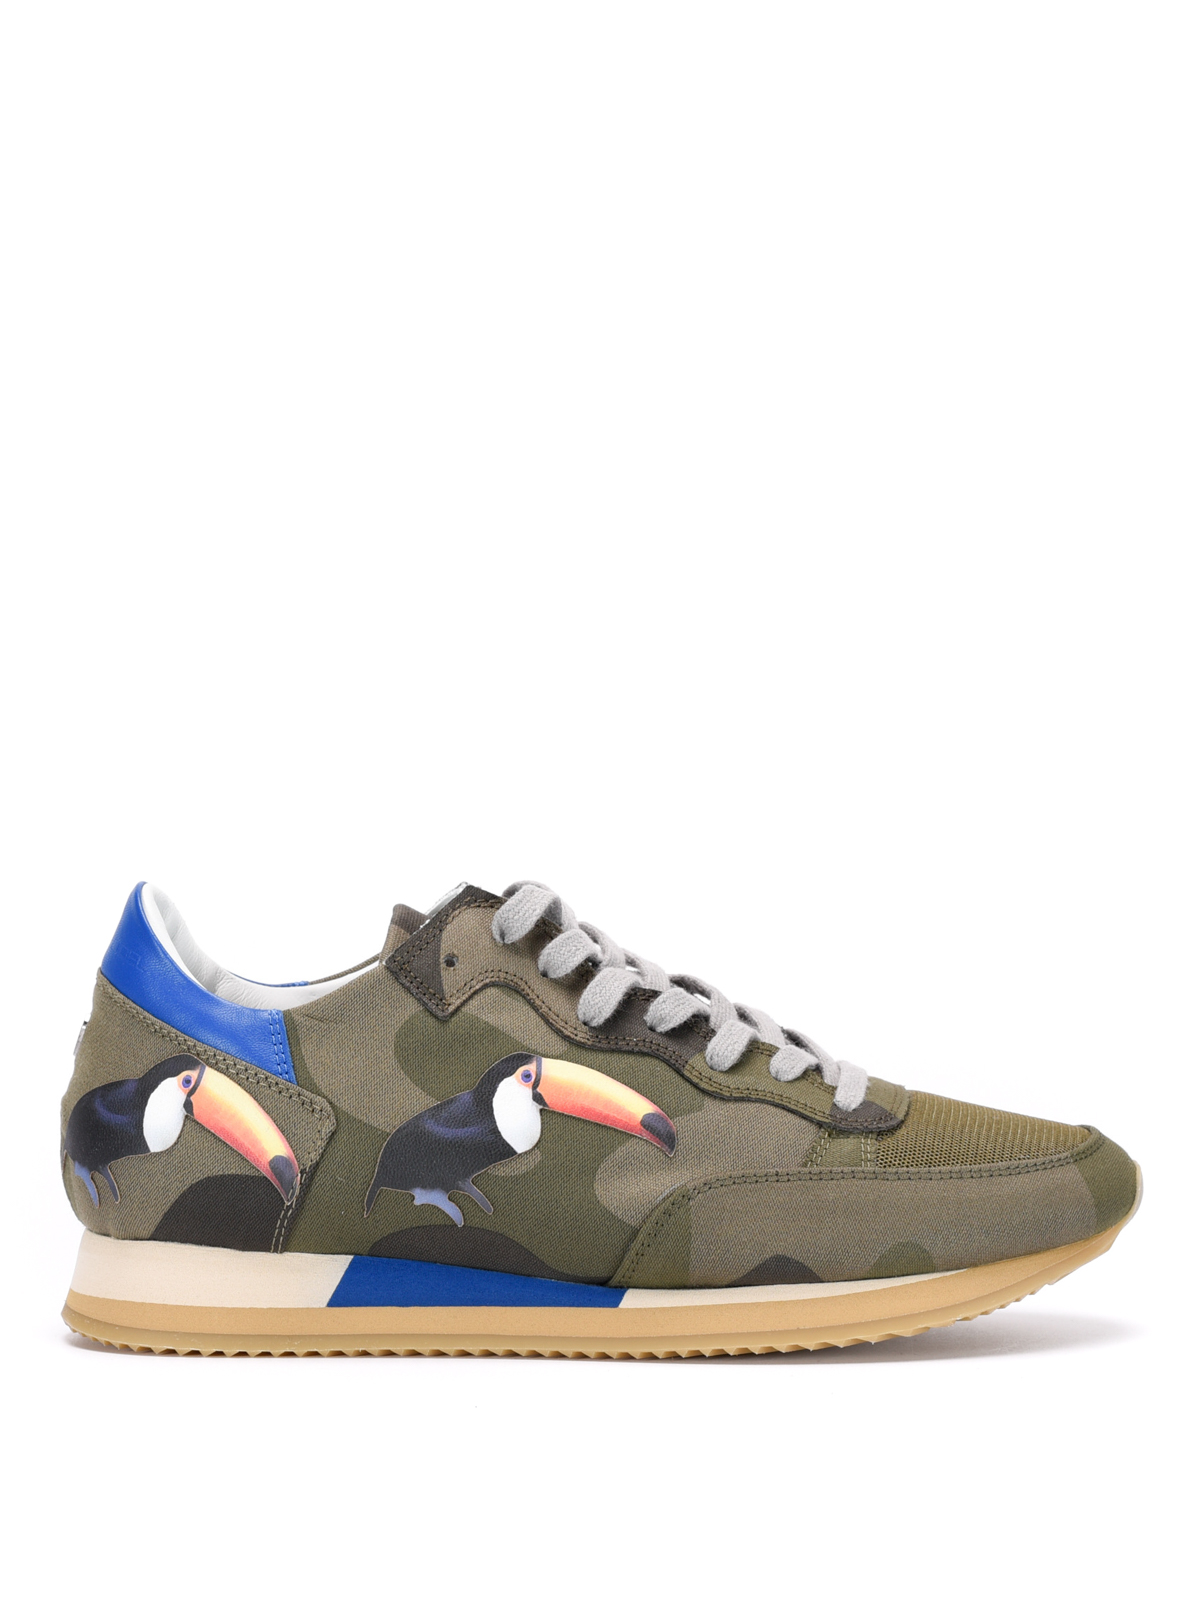 tropez toucan patches sneakers by philippe model trainers ikrix. Black Bedroom Furniture Sets. Home Design Ideas